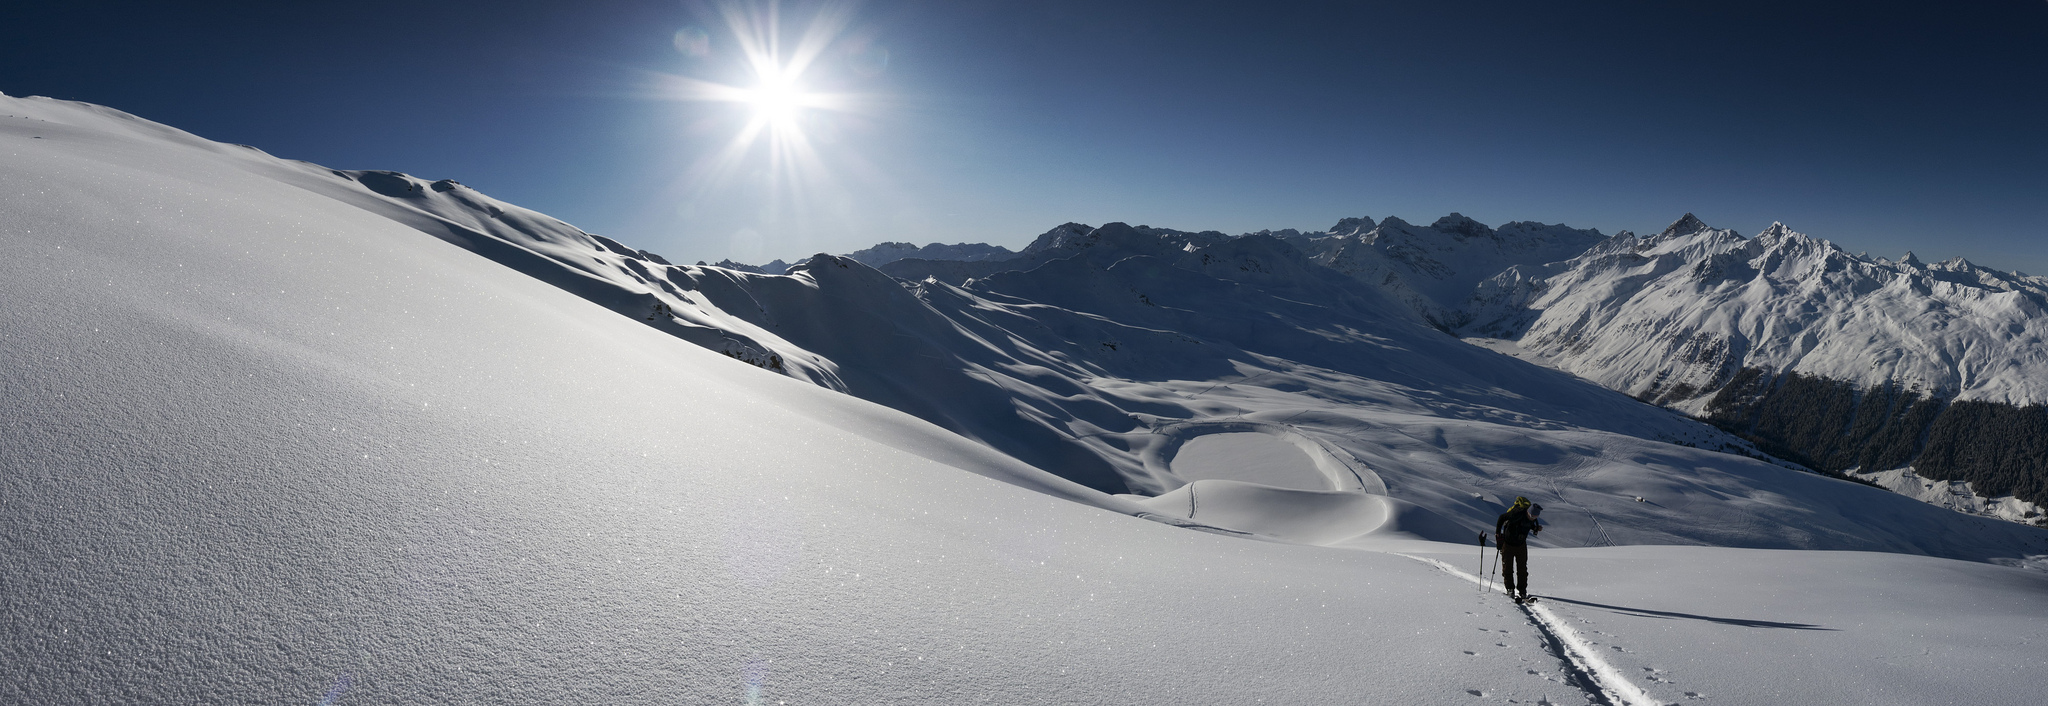 Alpine ski resorts plagued by lack of snow - Davos Klosters Davos Klosters Davos Klosters